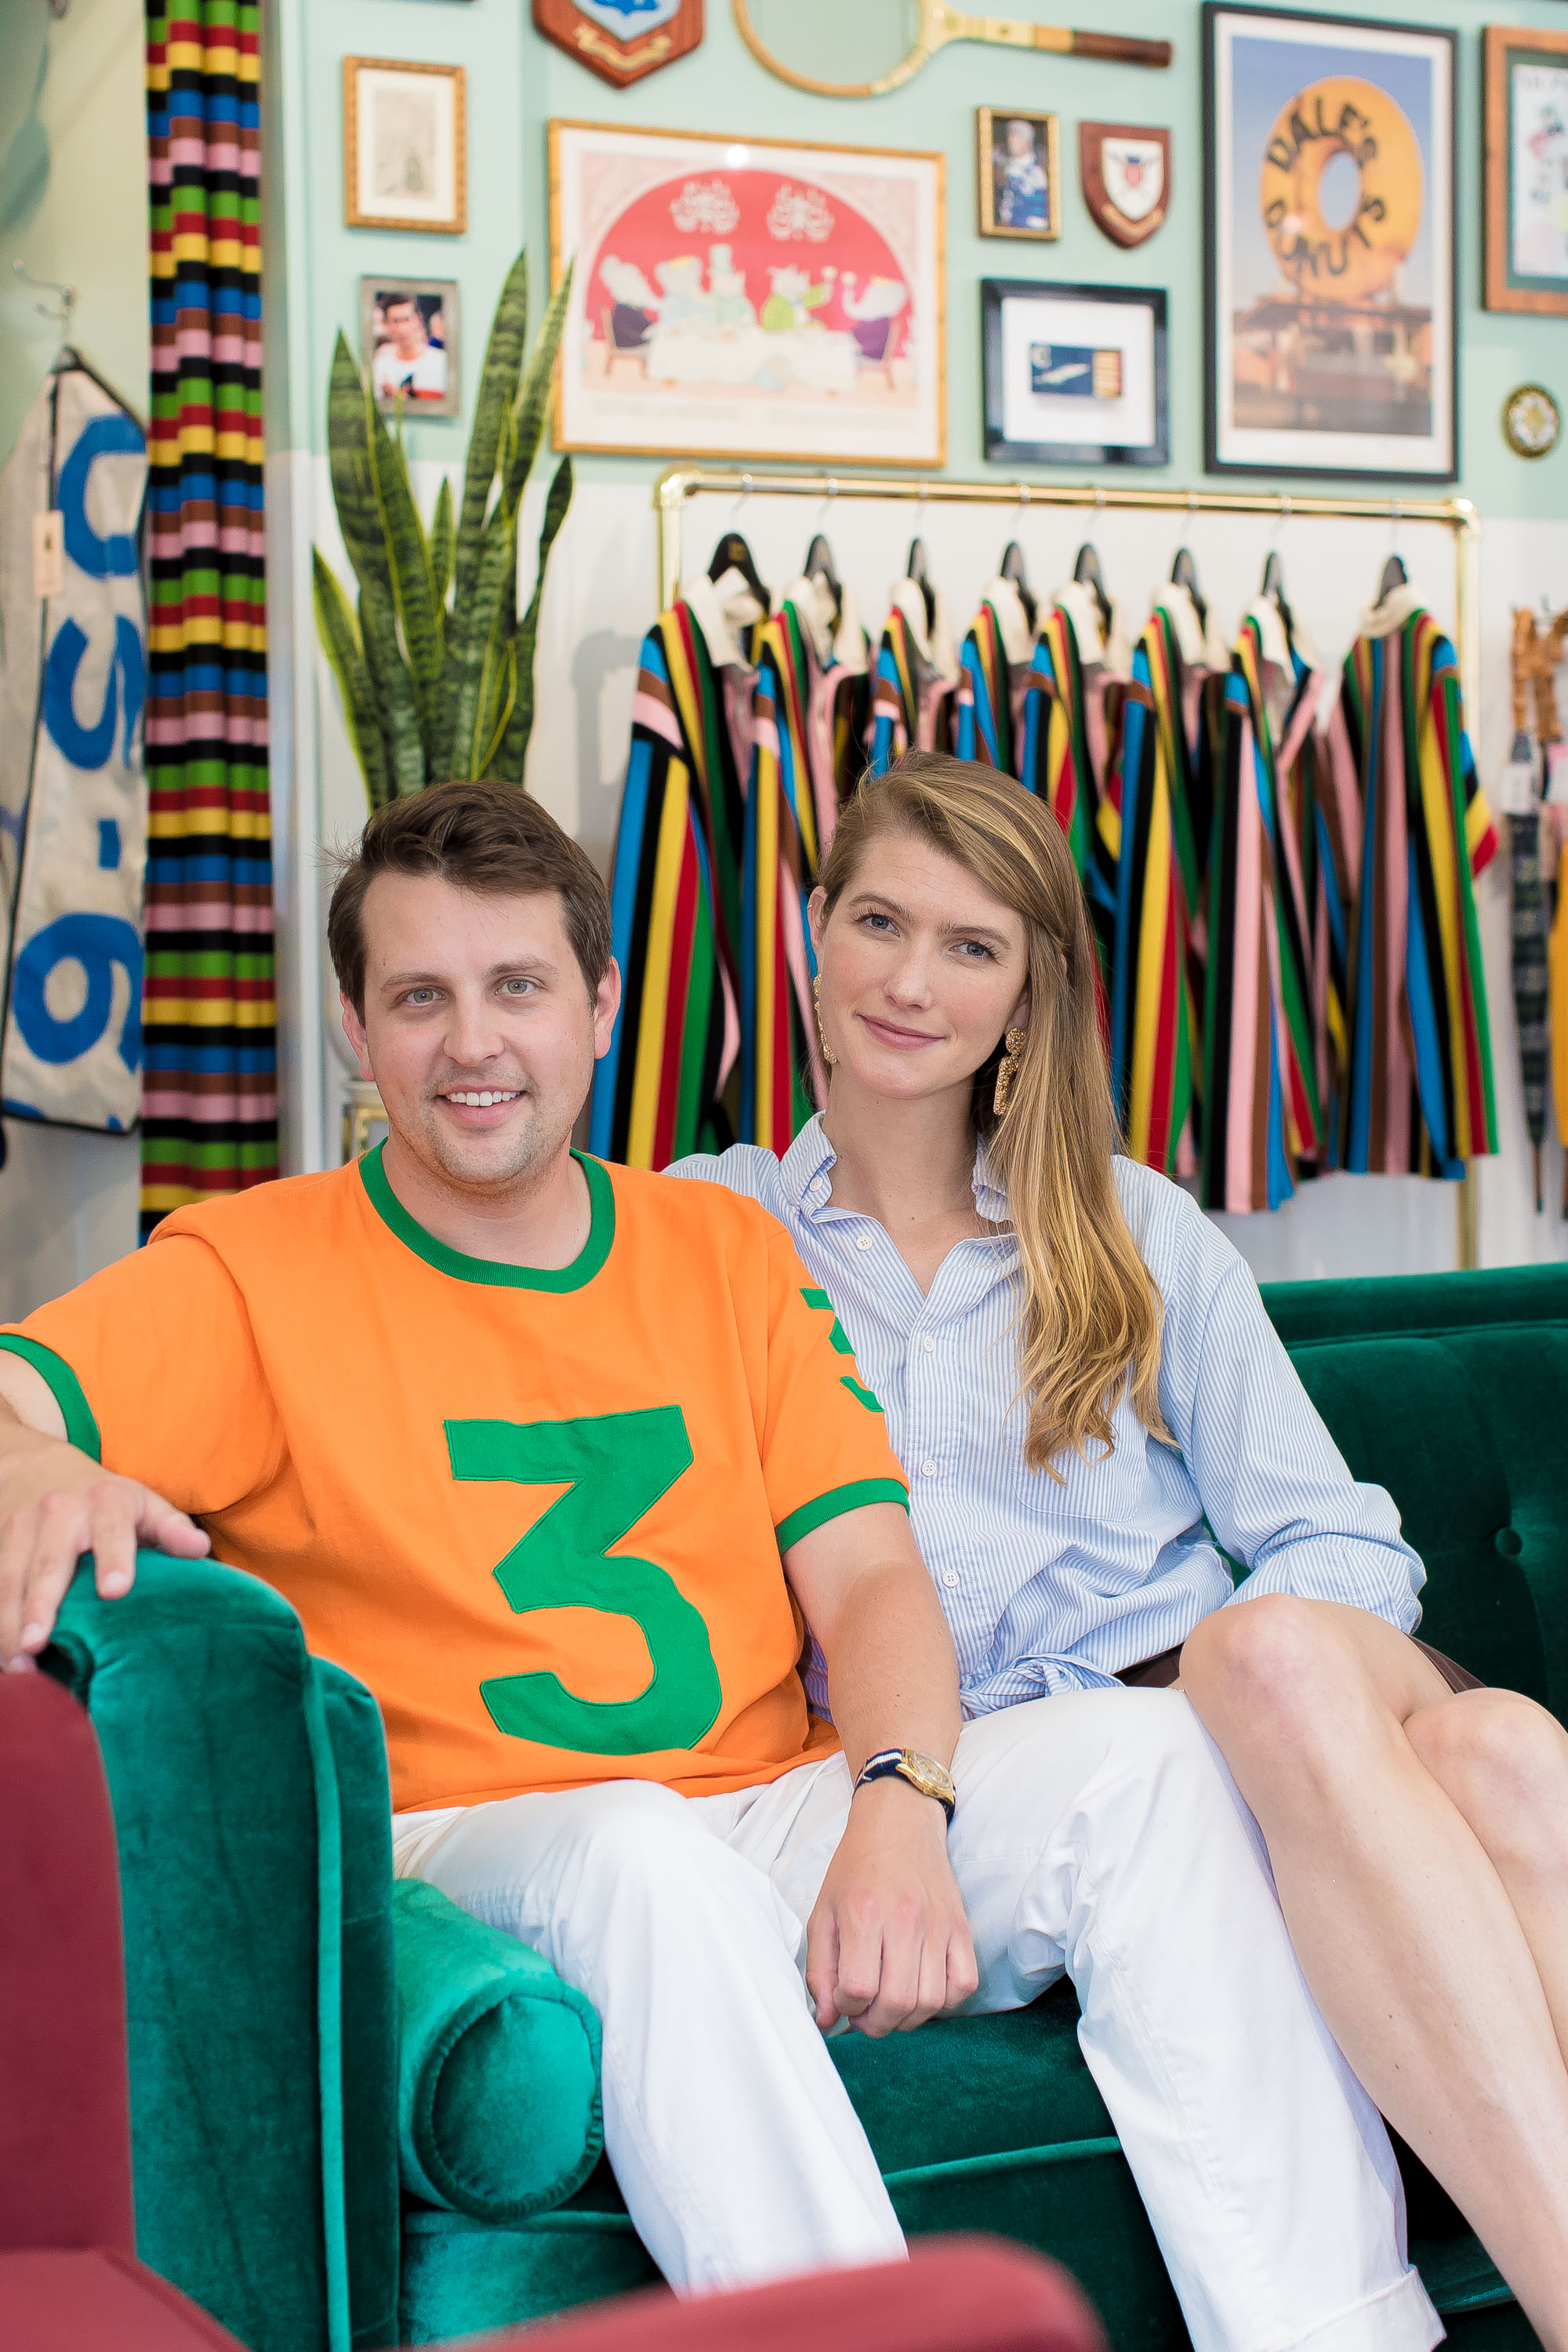 Jack and Keziah at the Rowing Blazer store.